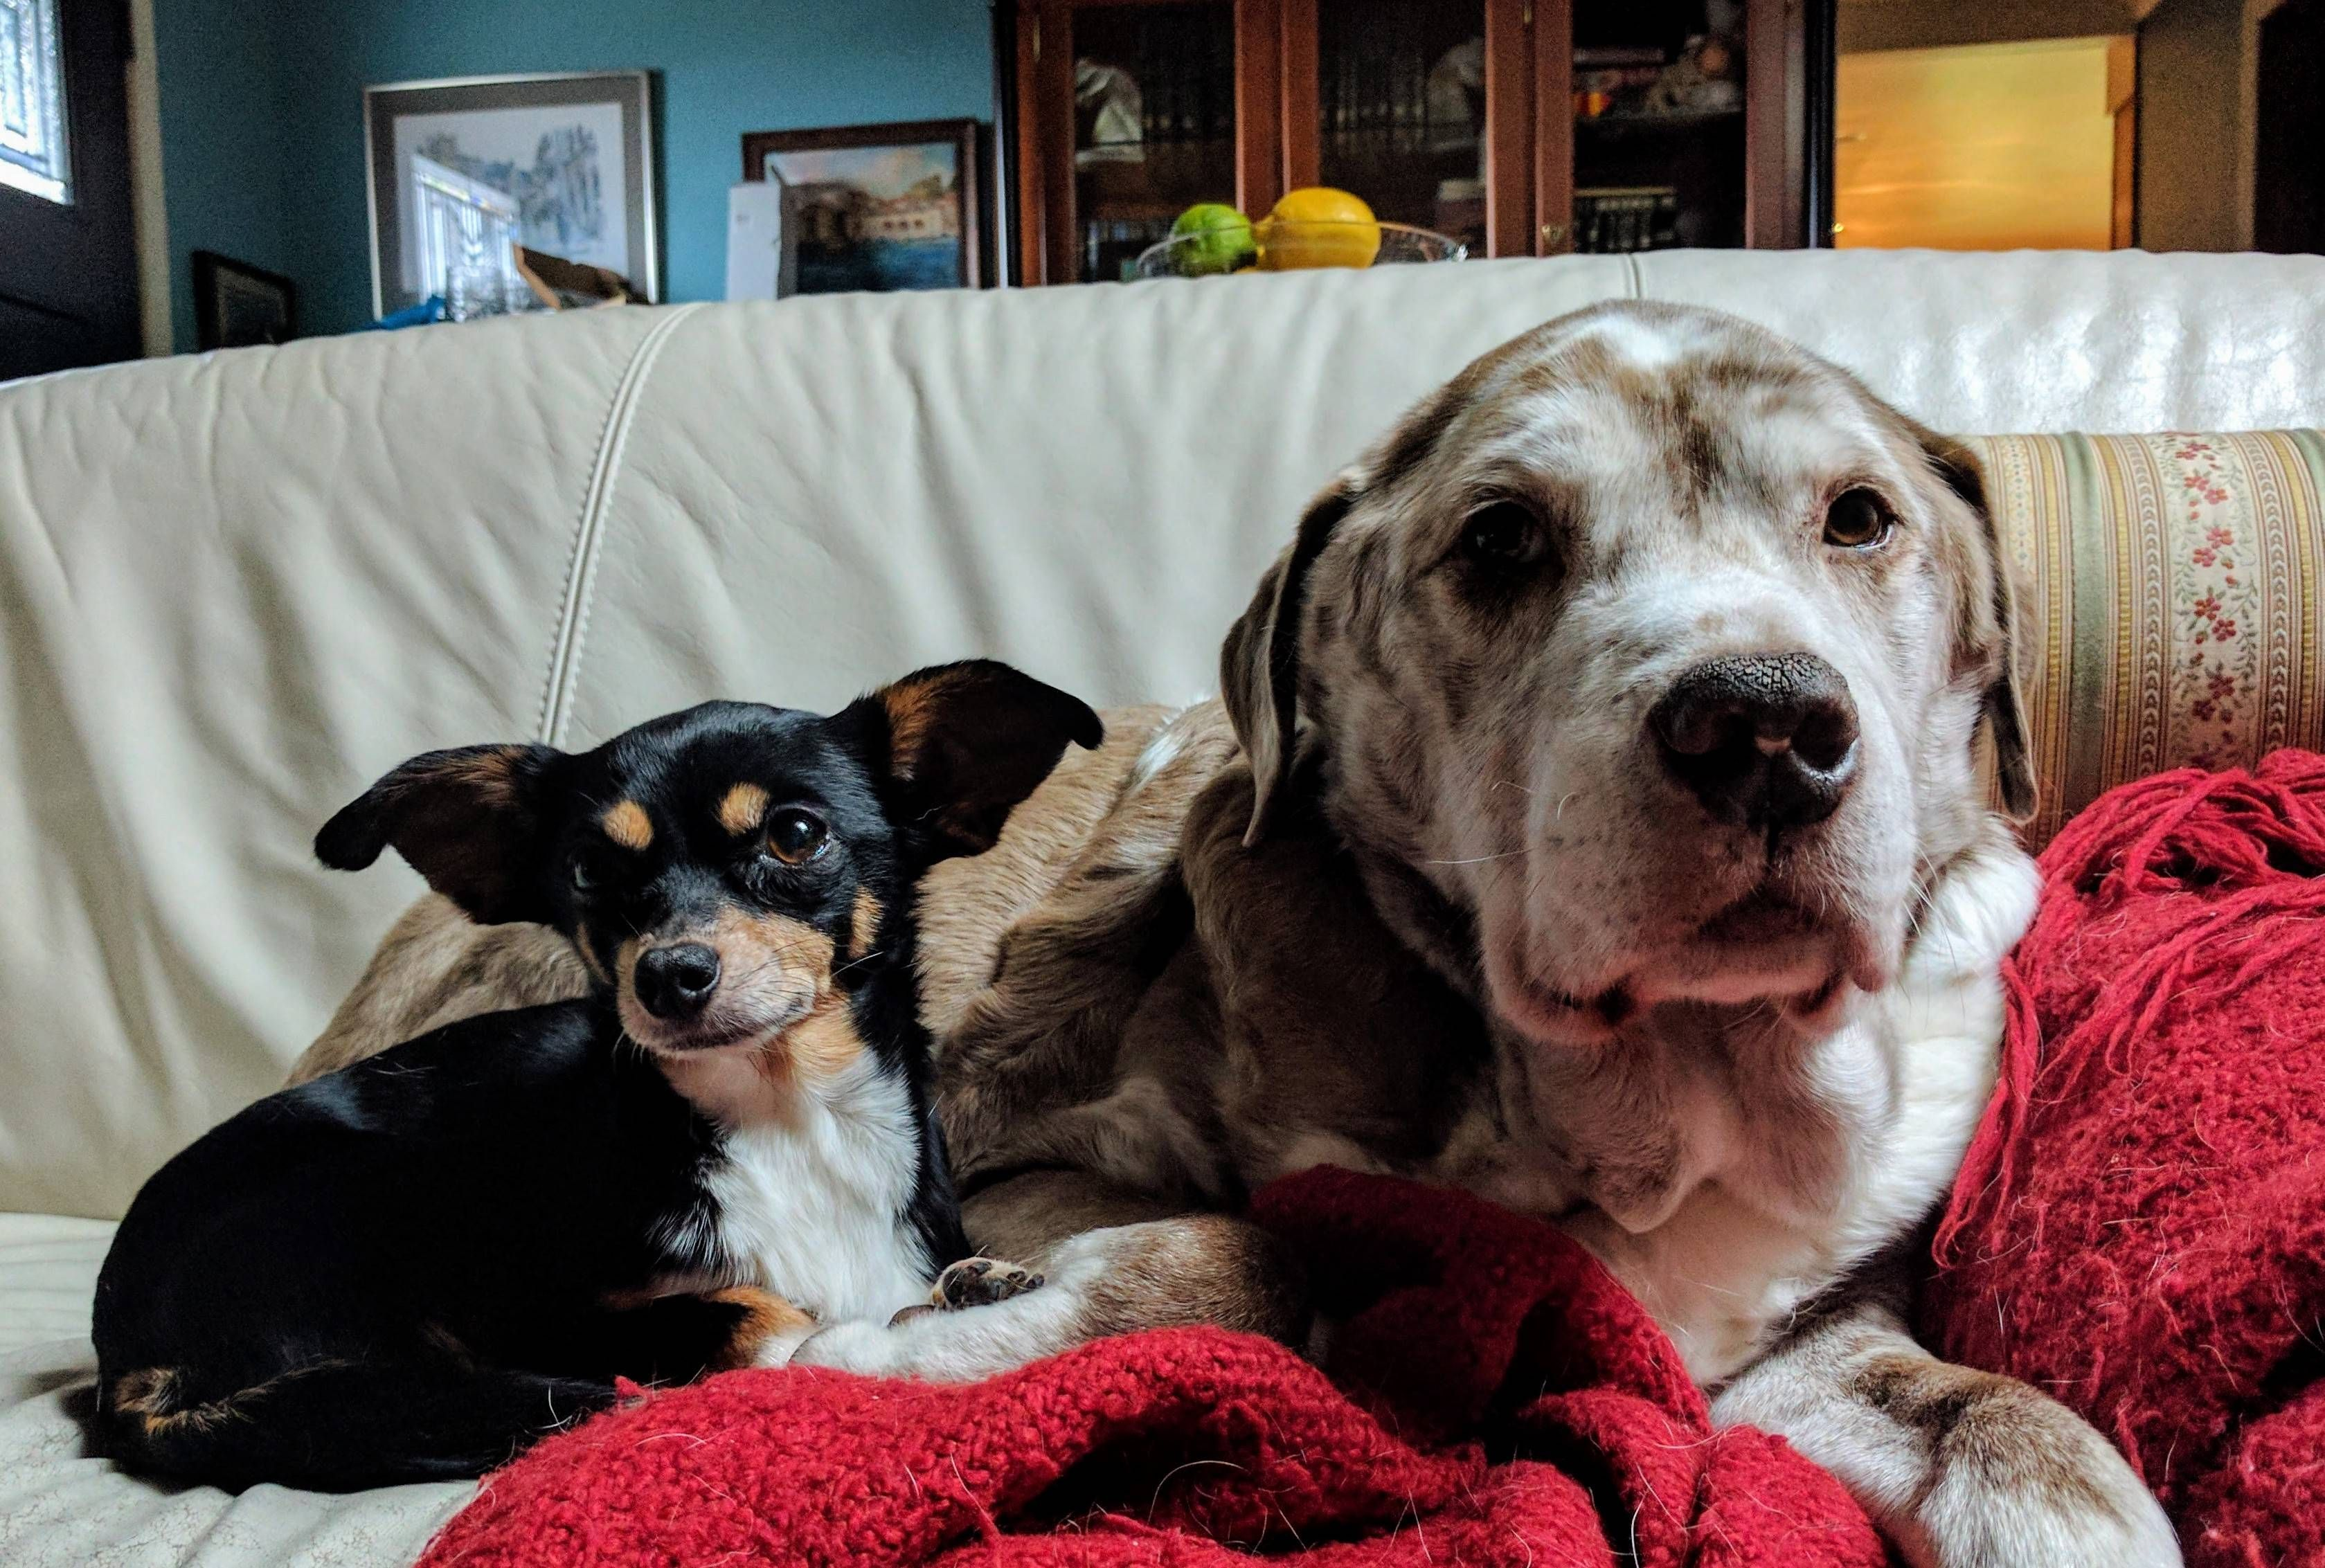 the odd couple together 11 years http://ift.tt/2mXFYWY